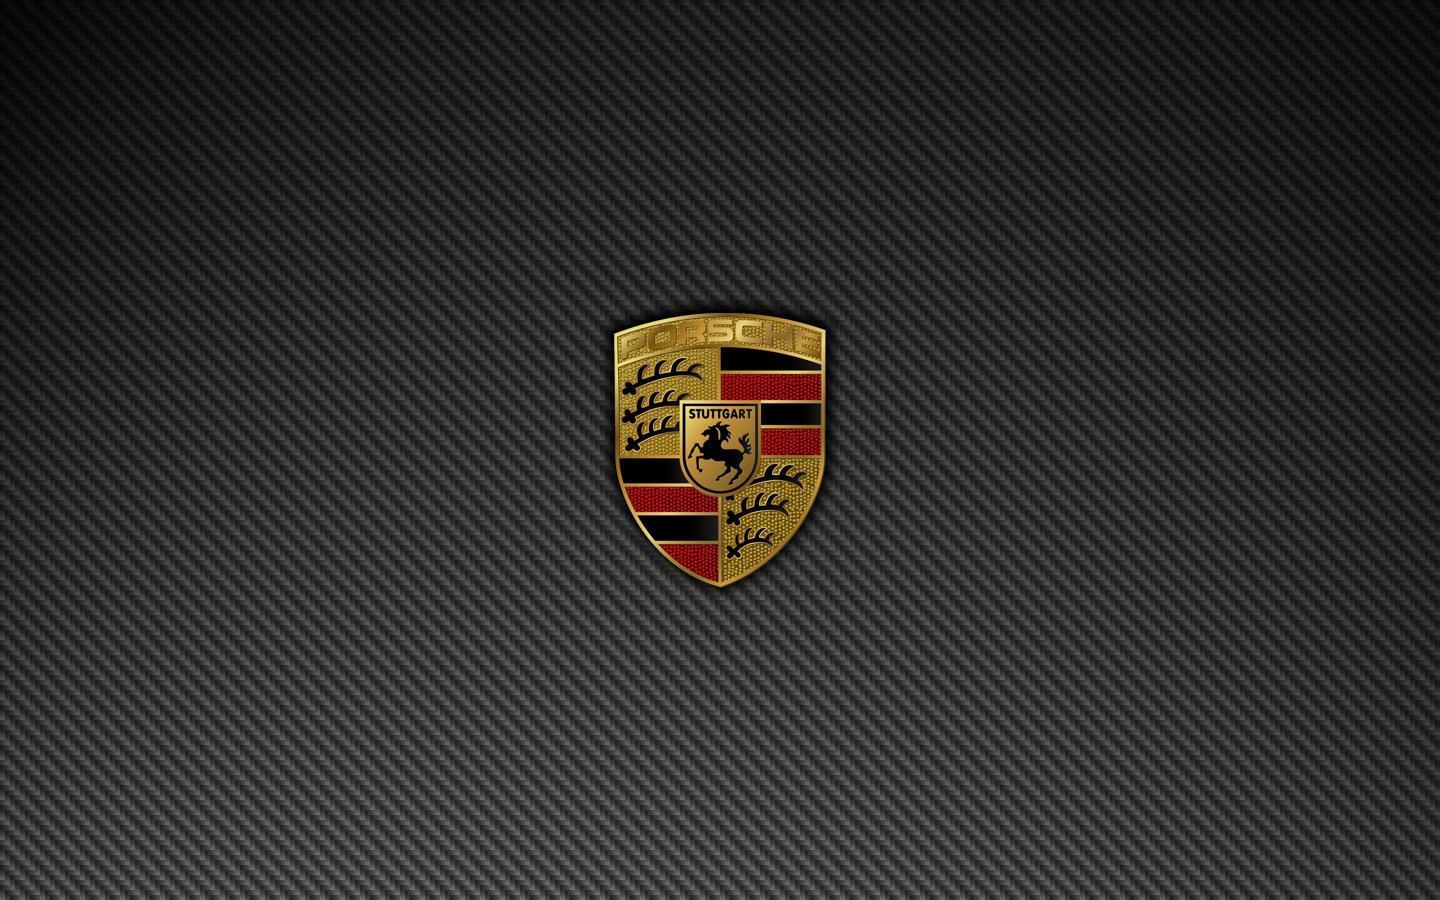 Porsche Returns To Simracing After 12 Years The News Wheel